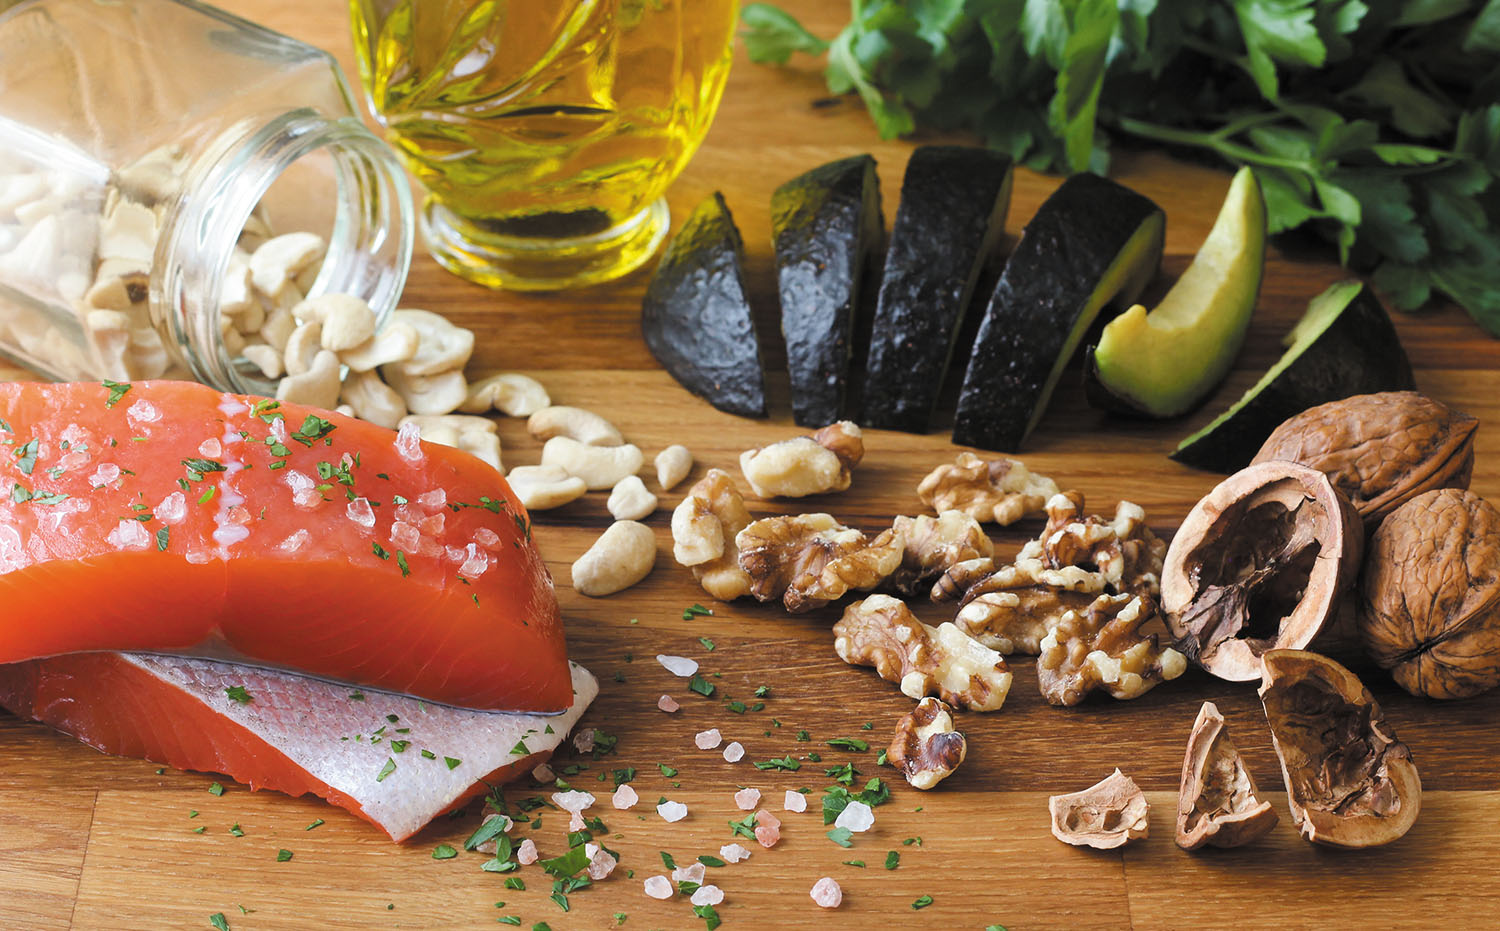 Foods to curb chronic pain